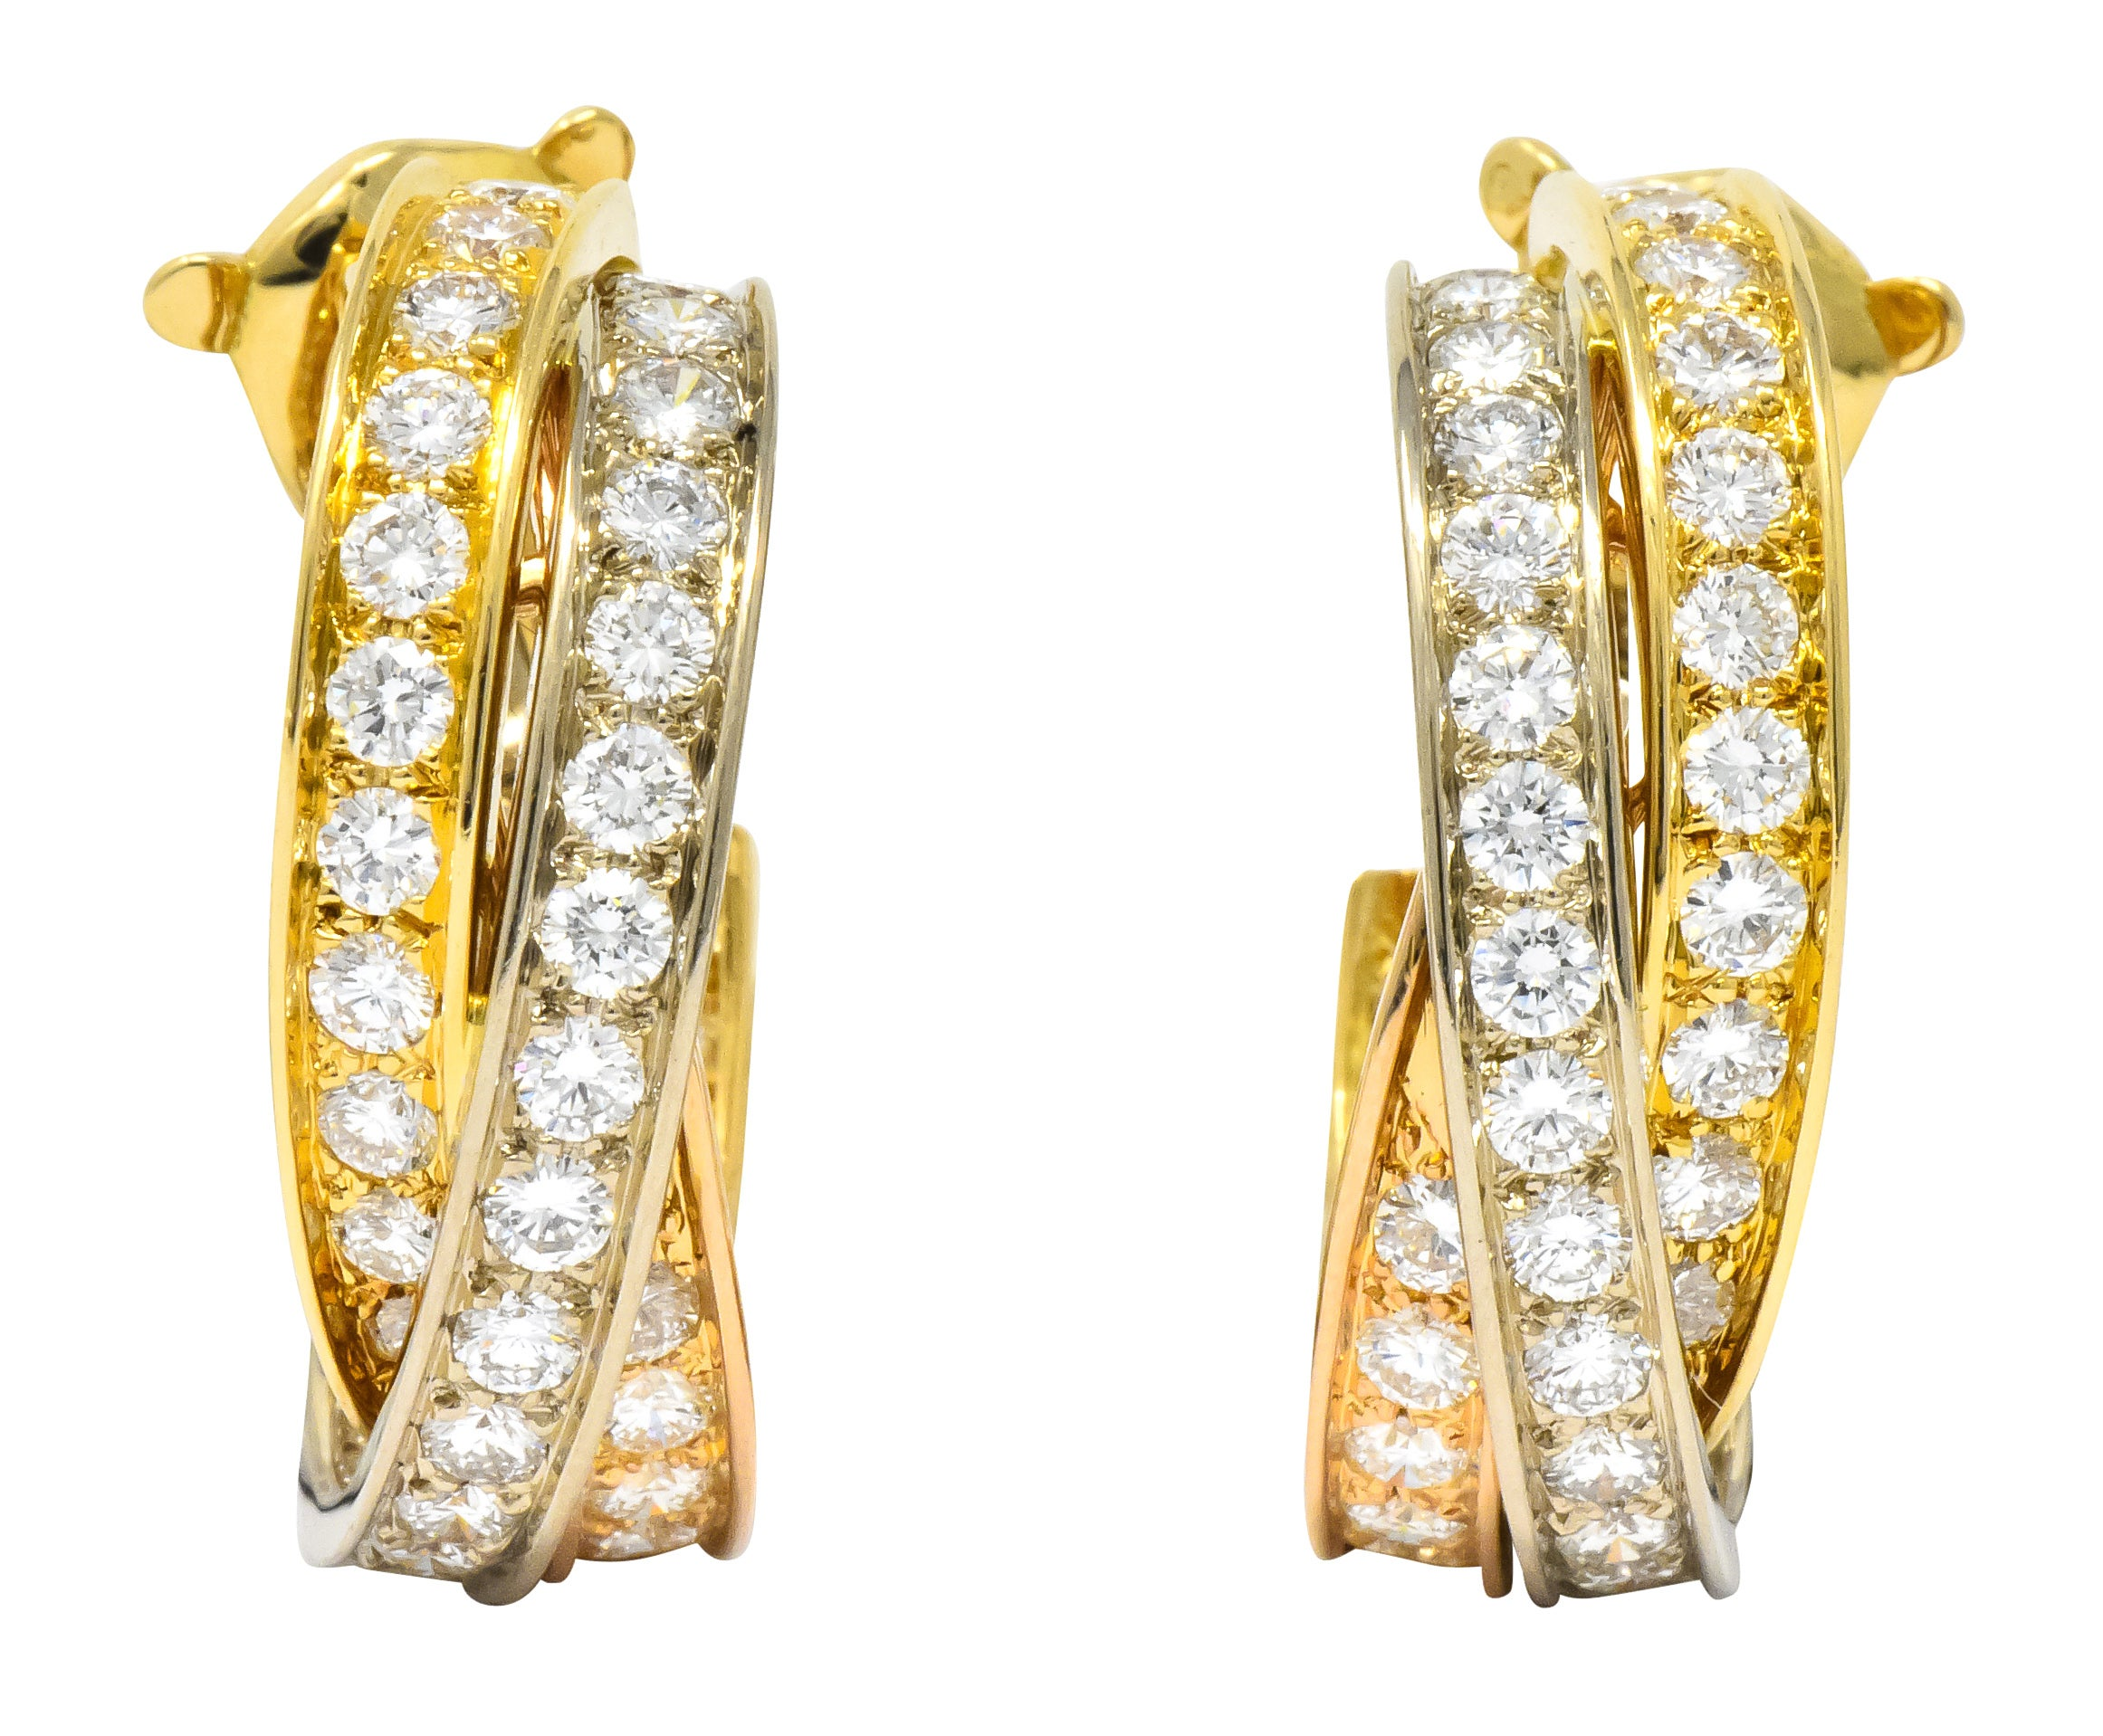 Cartier 5.00 Carat Round Brilliant Diamond 18 Karat Tri-Gold Trinity Earrings